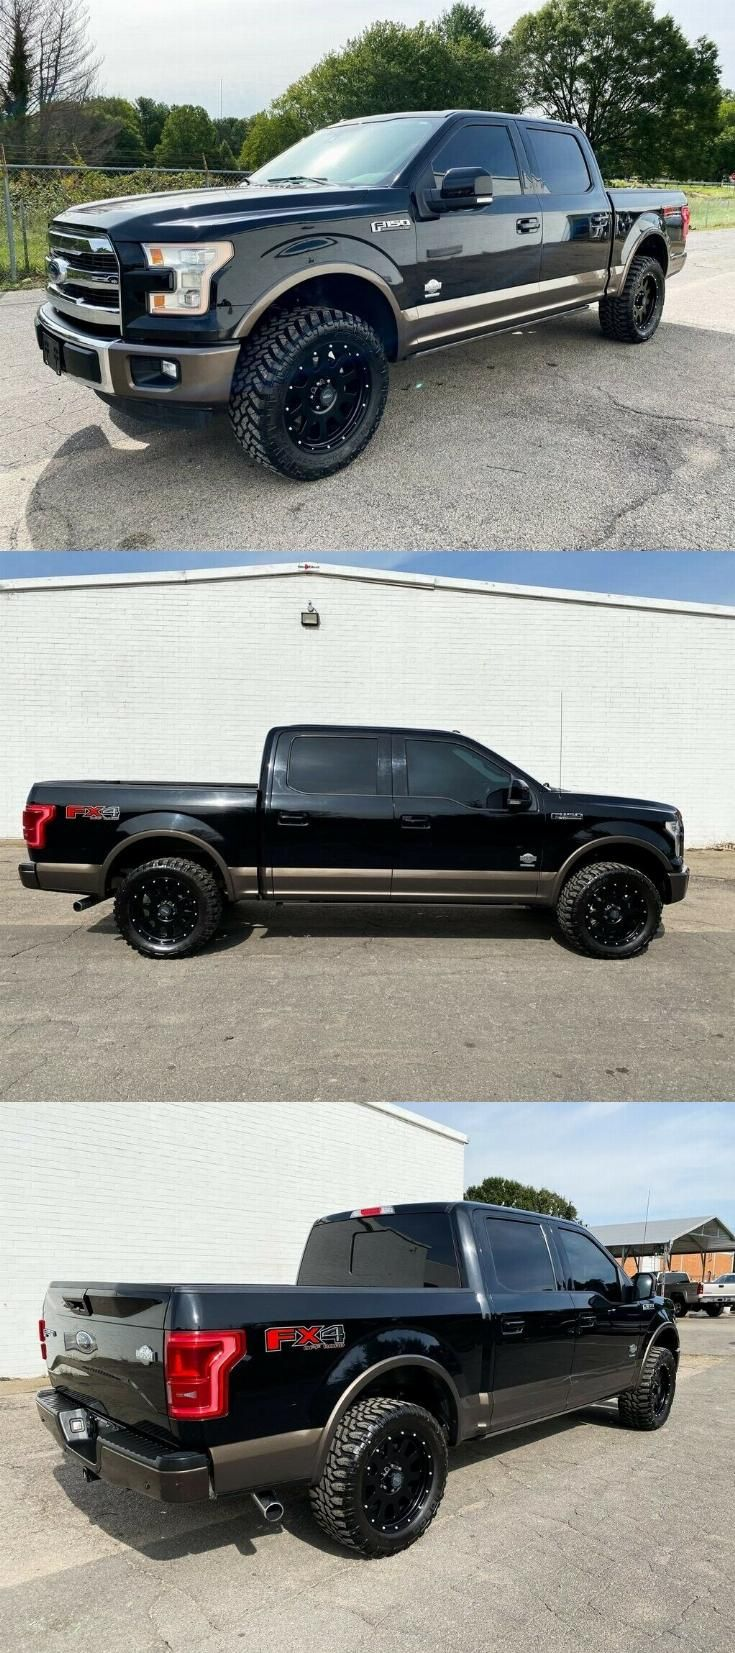 Lifted Single Cab F150 : lifted, single, Loaded, Ranch, Lifted, F150,, Trucks